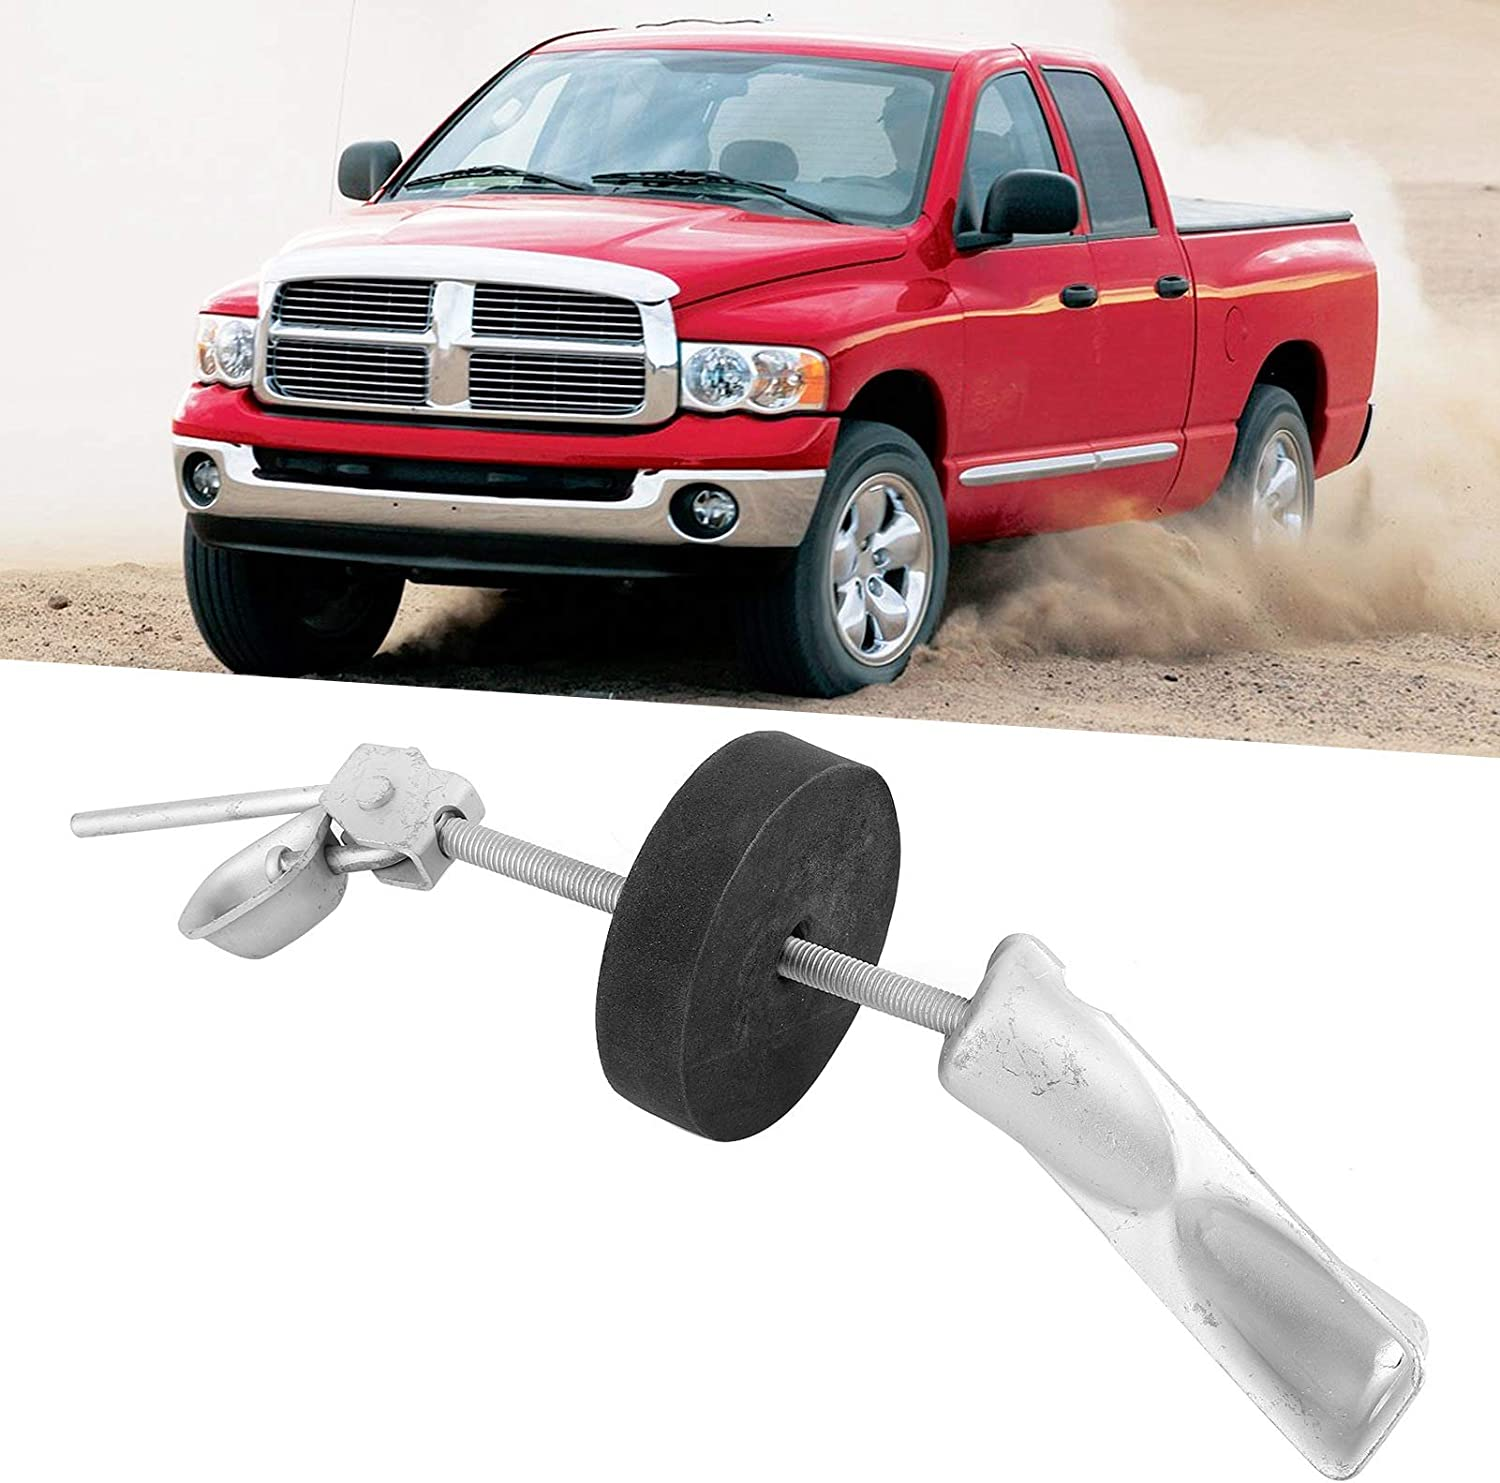 Parking Brake Cable Tensioner 52122296AA Accessory Fit for RAM 1500 2500 3500 Qiilu Parking Brake Cable Tensioner